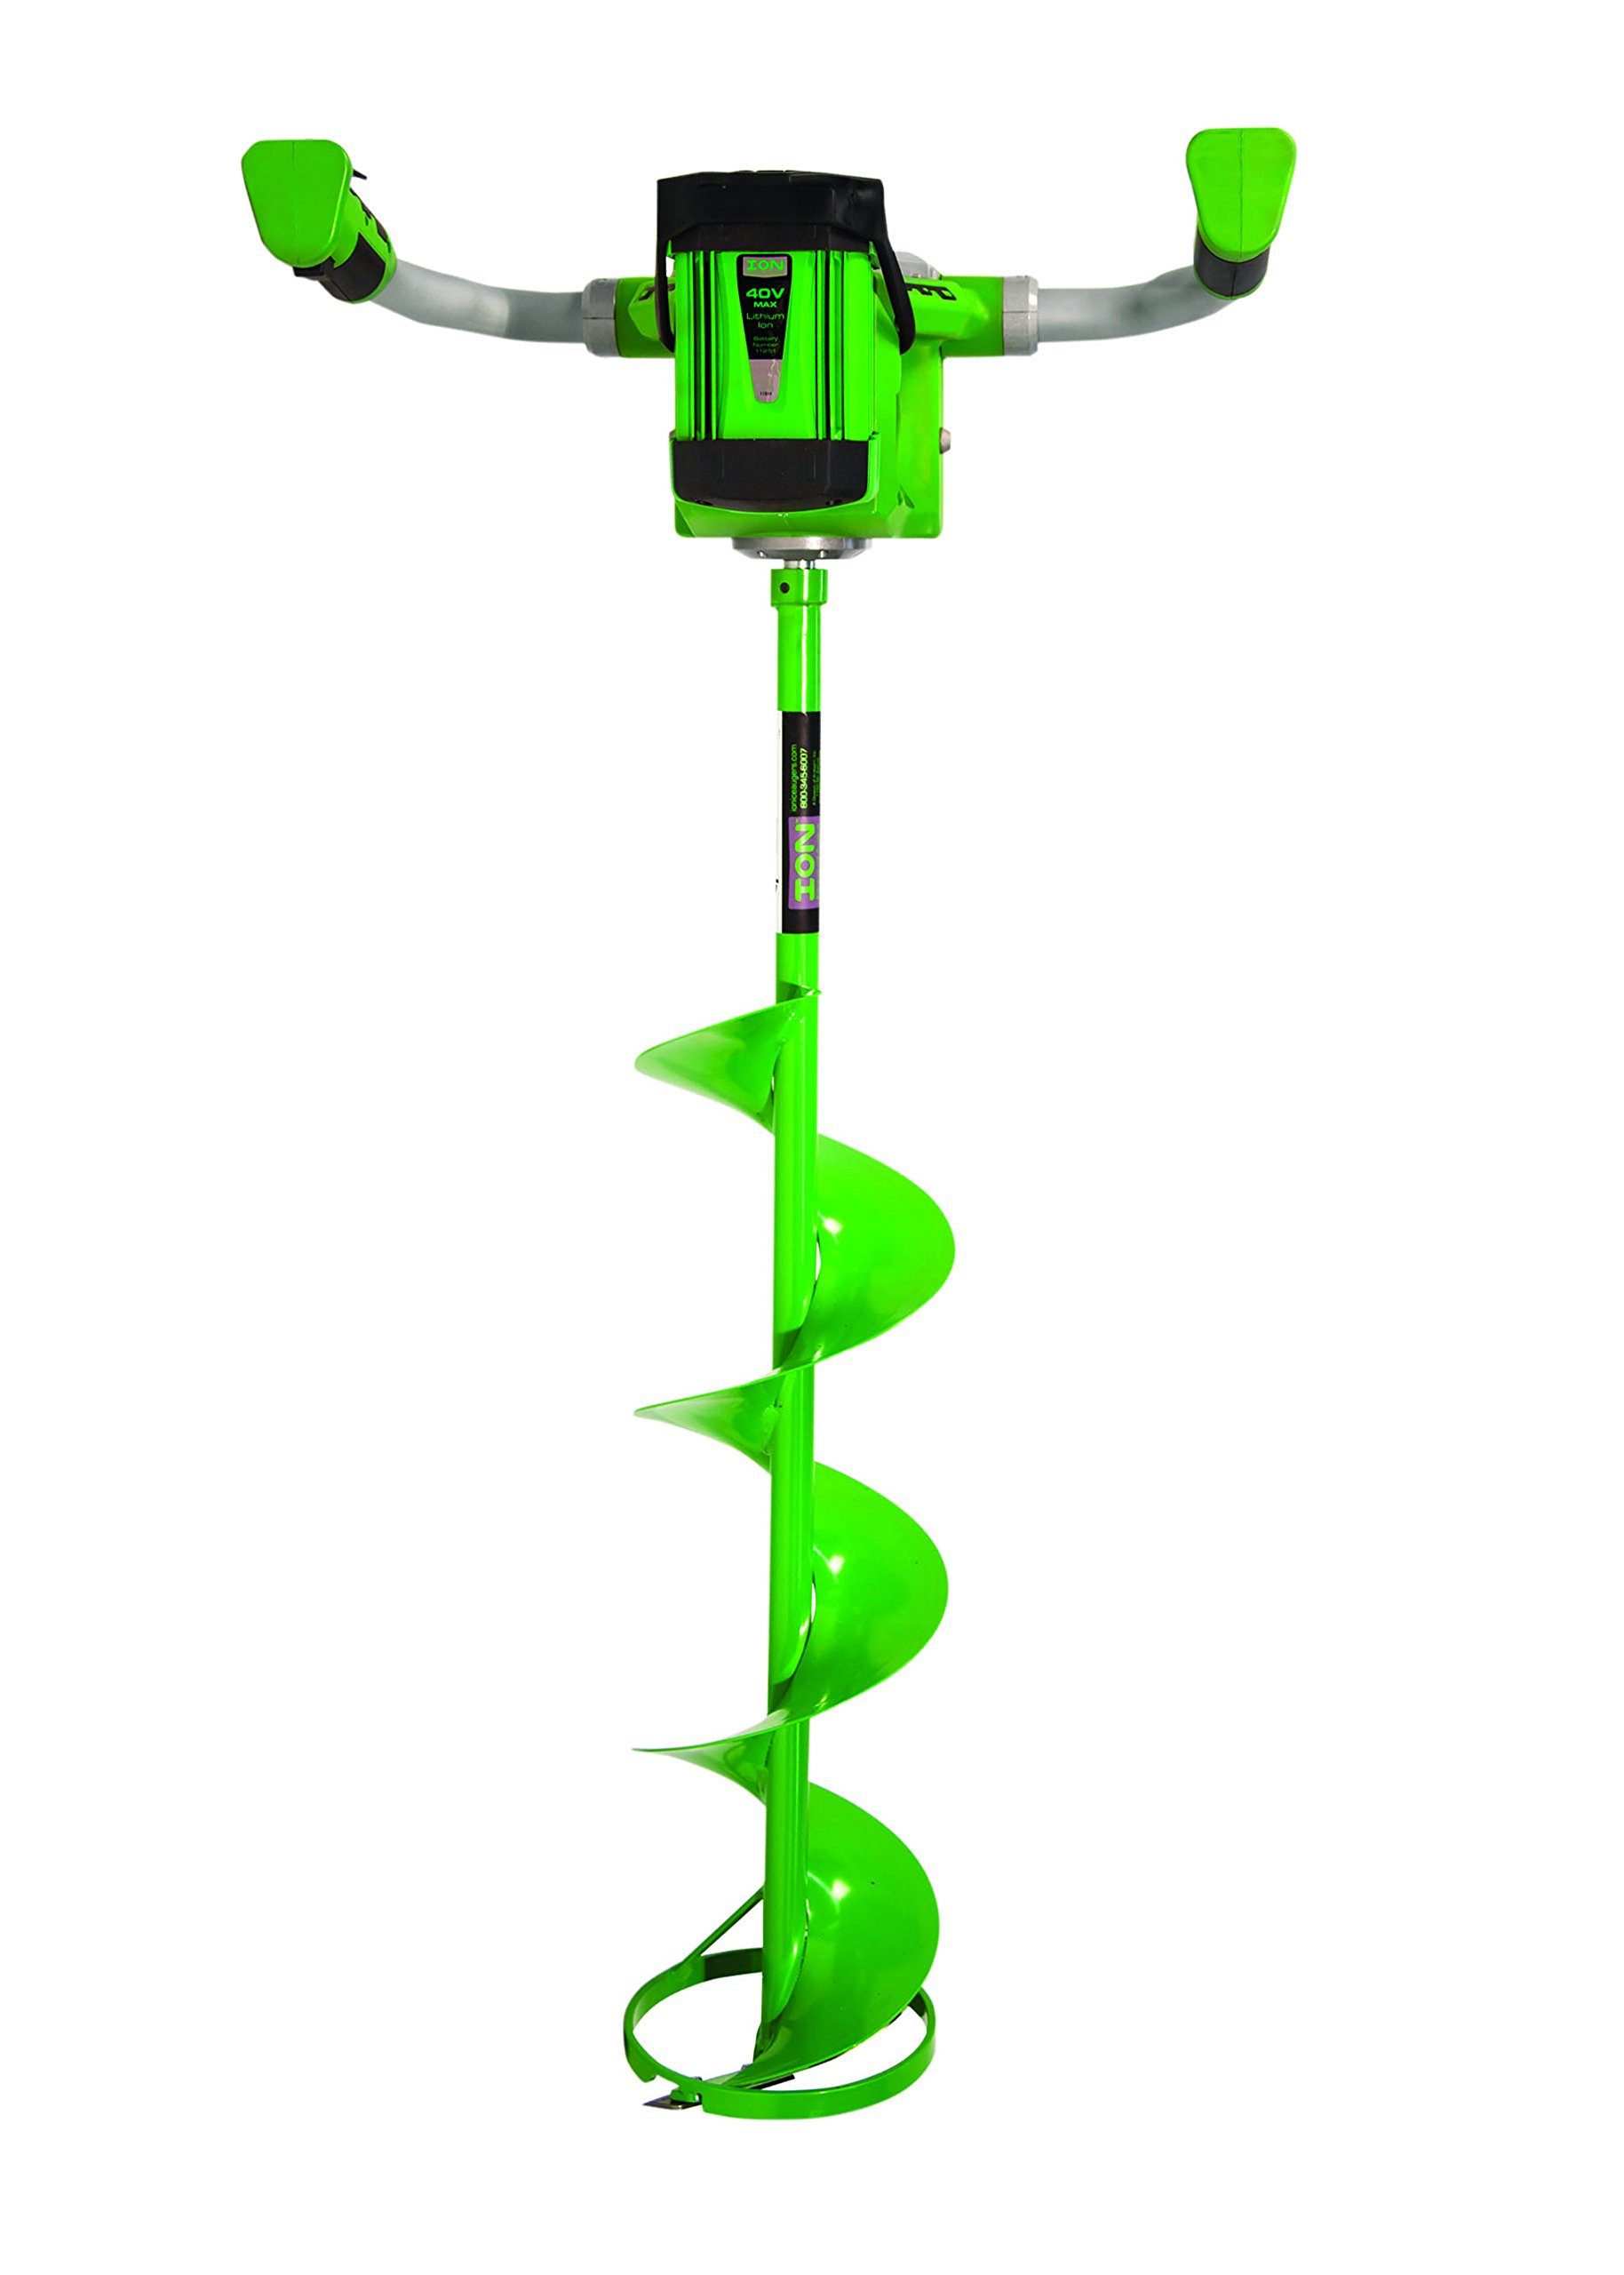 ION 19150 40V 3 amp-hour Electric 8-Inch Ice Auger, with Reverse by ION